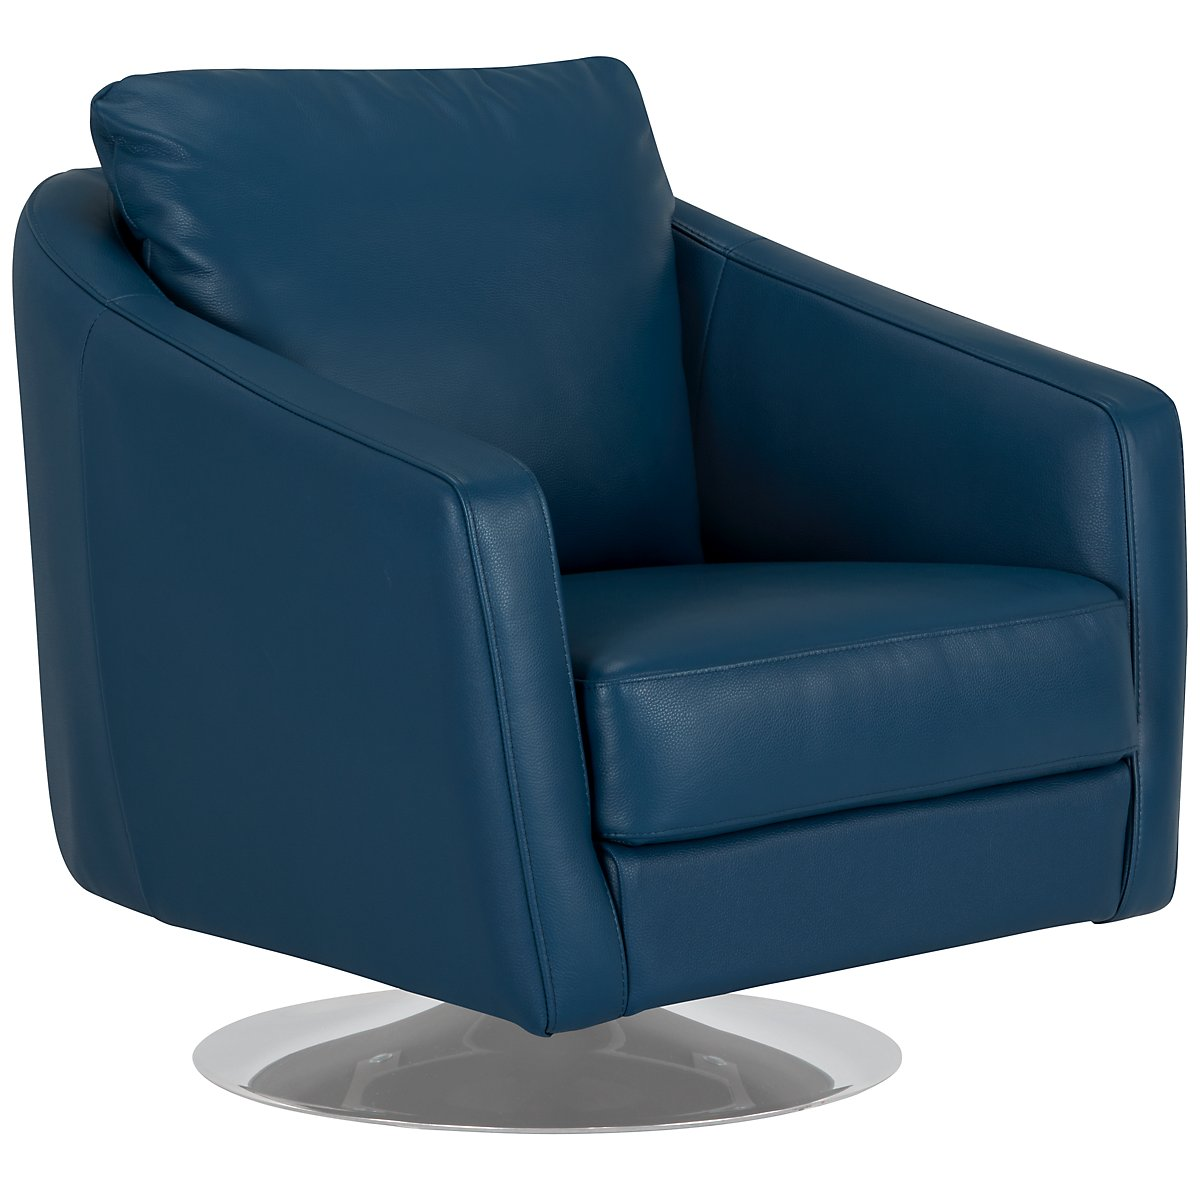 City Furniture Luca Dk Blue Leather Swivel Accent Chair